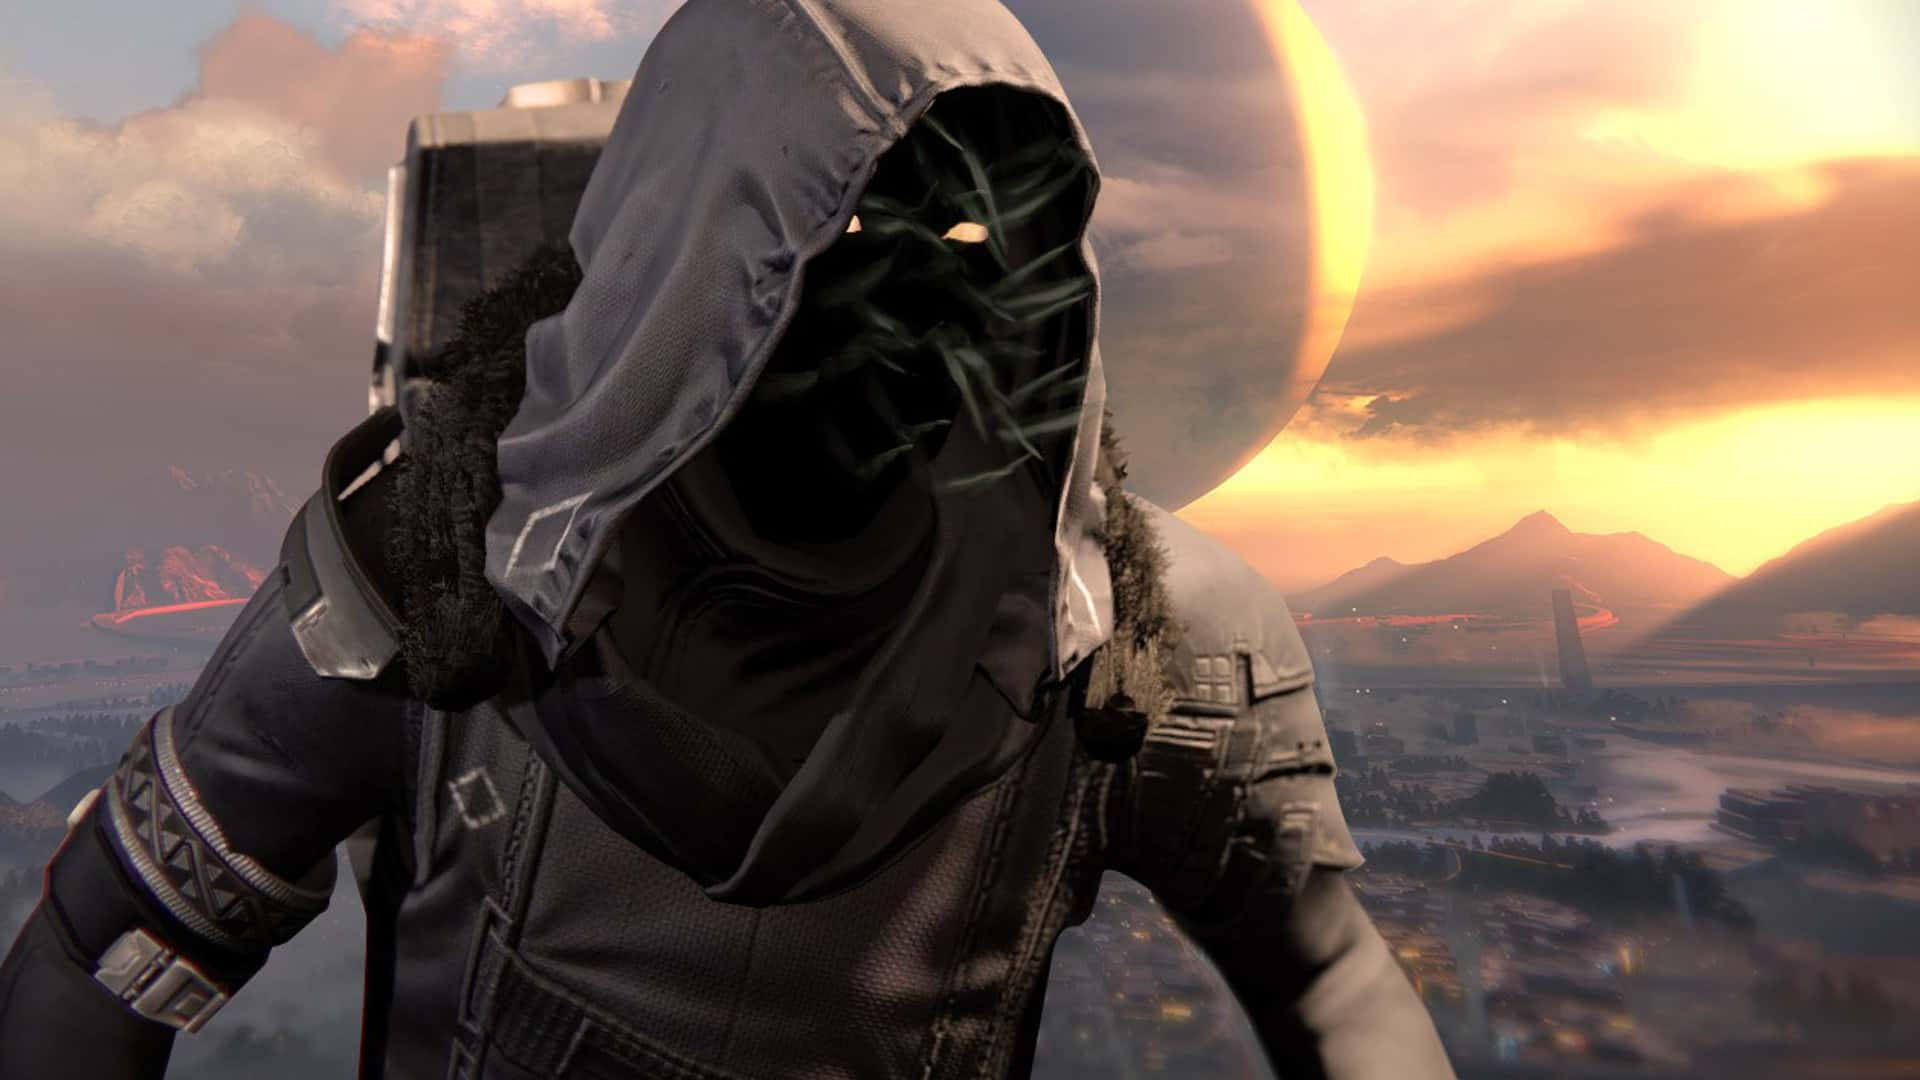 destiny 2 xur location july 10, Destiny 2 Xur Location Today July 10 and Items for Sale, MP1st, MP1st